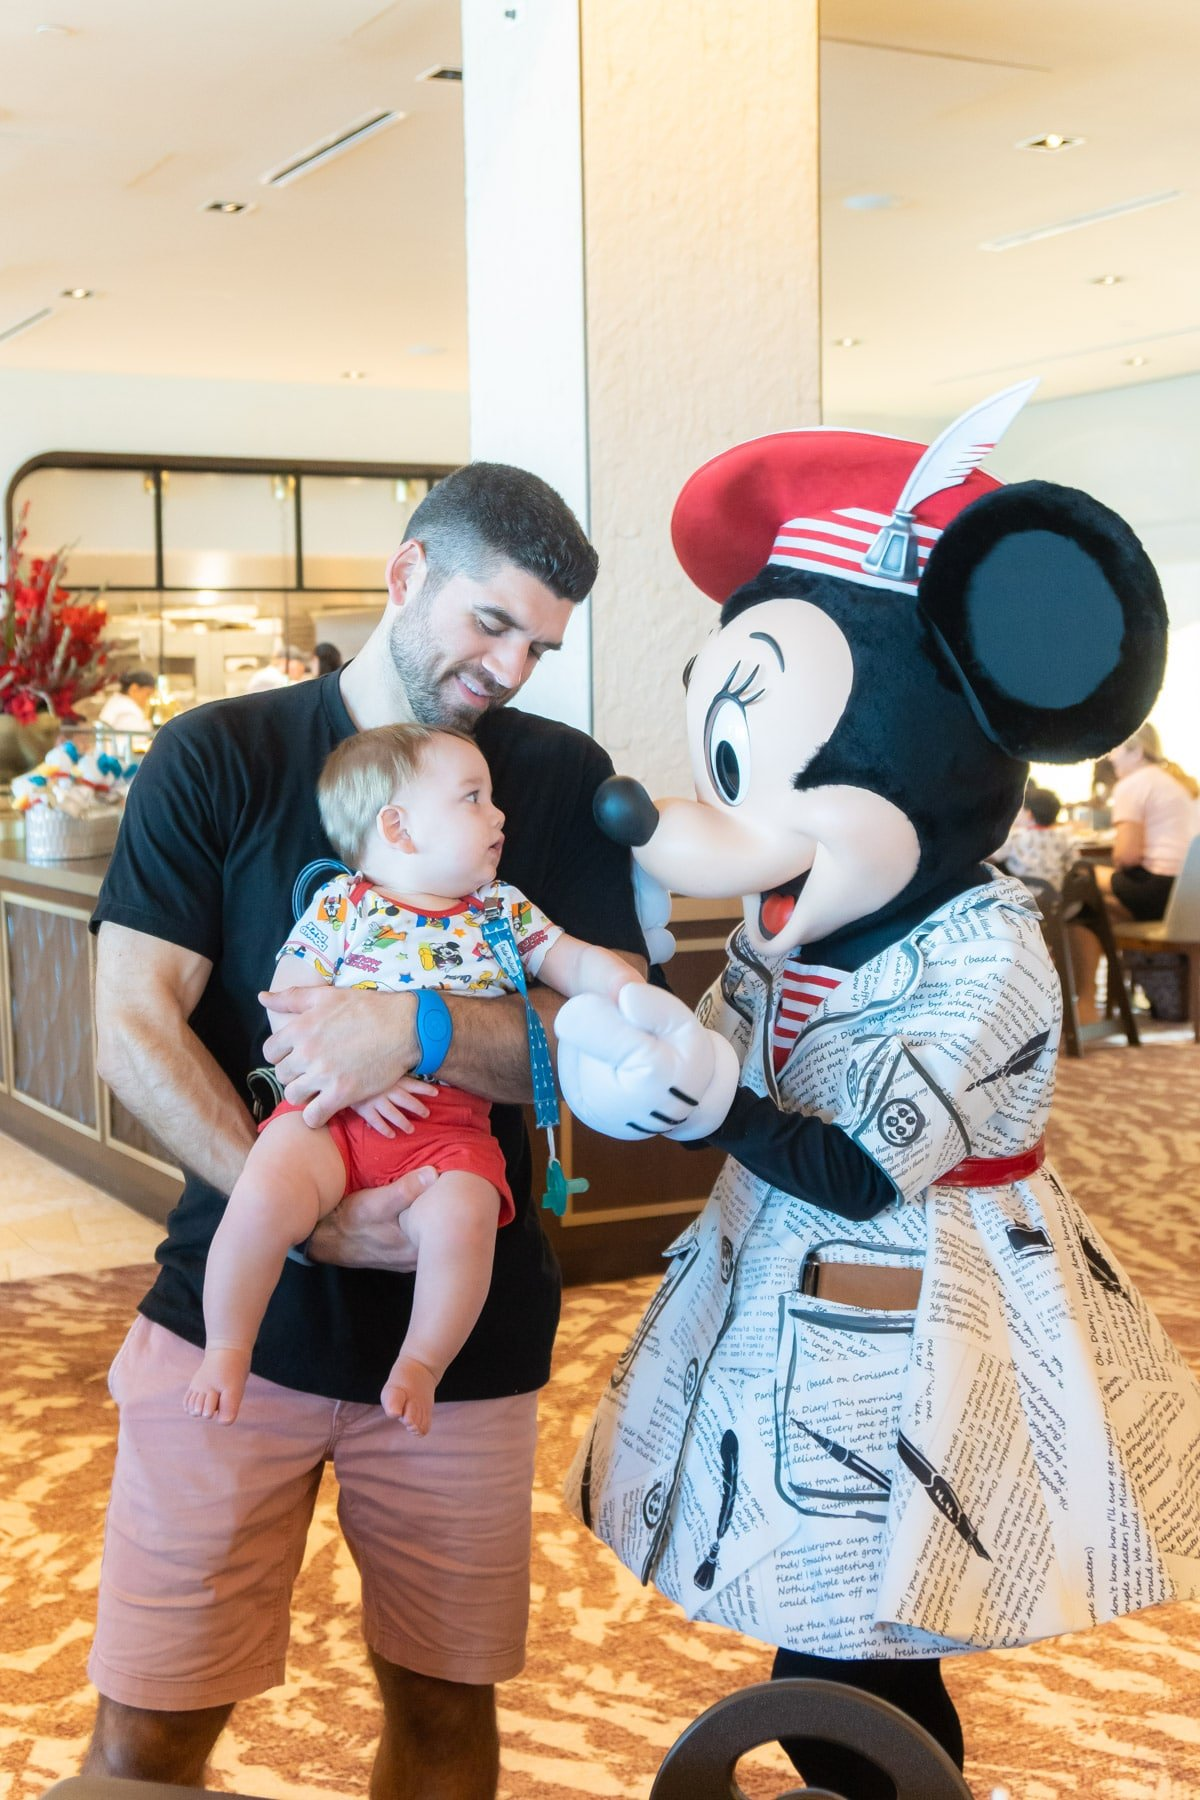 Man and baby with Minnie Mouse